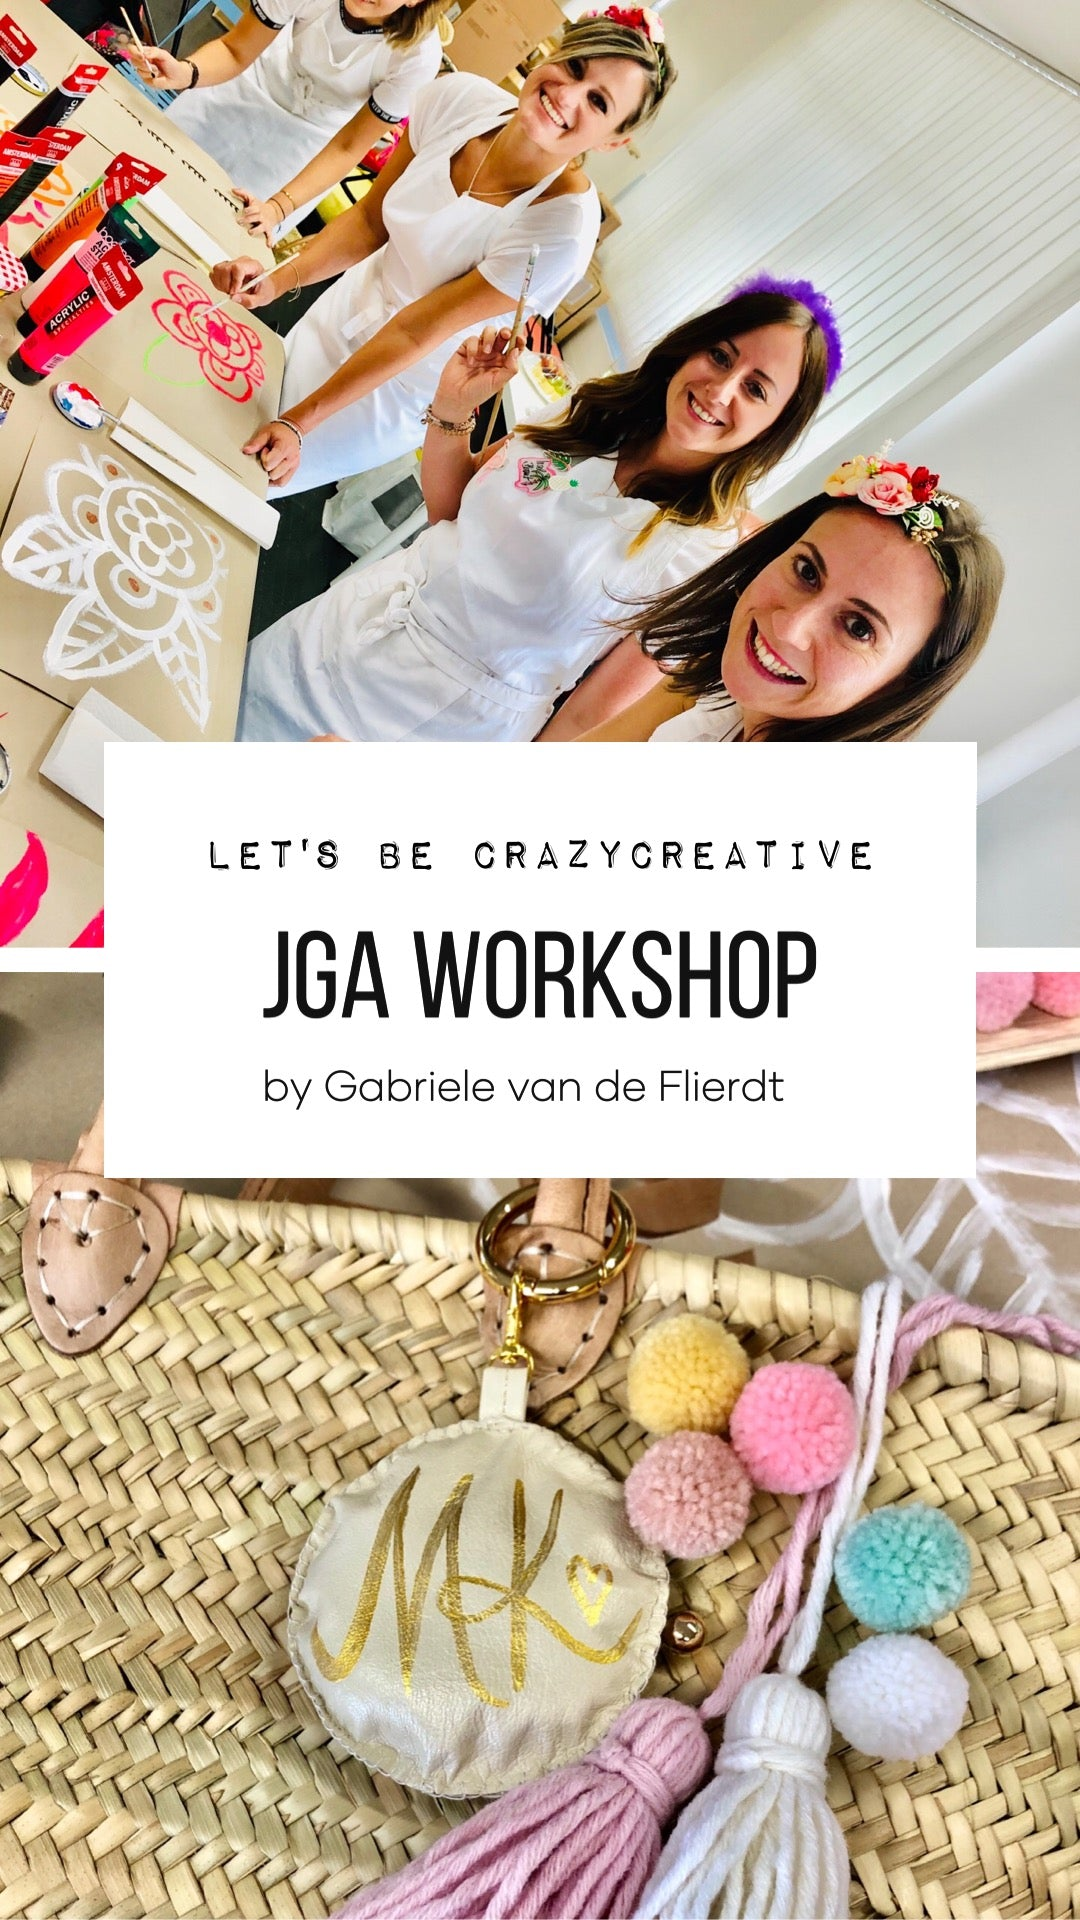 jga-crazycreative-workshop-foto-Titel-002-by-gabriele-van-de-flierdt